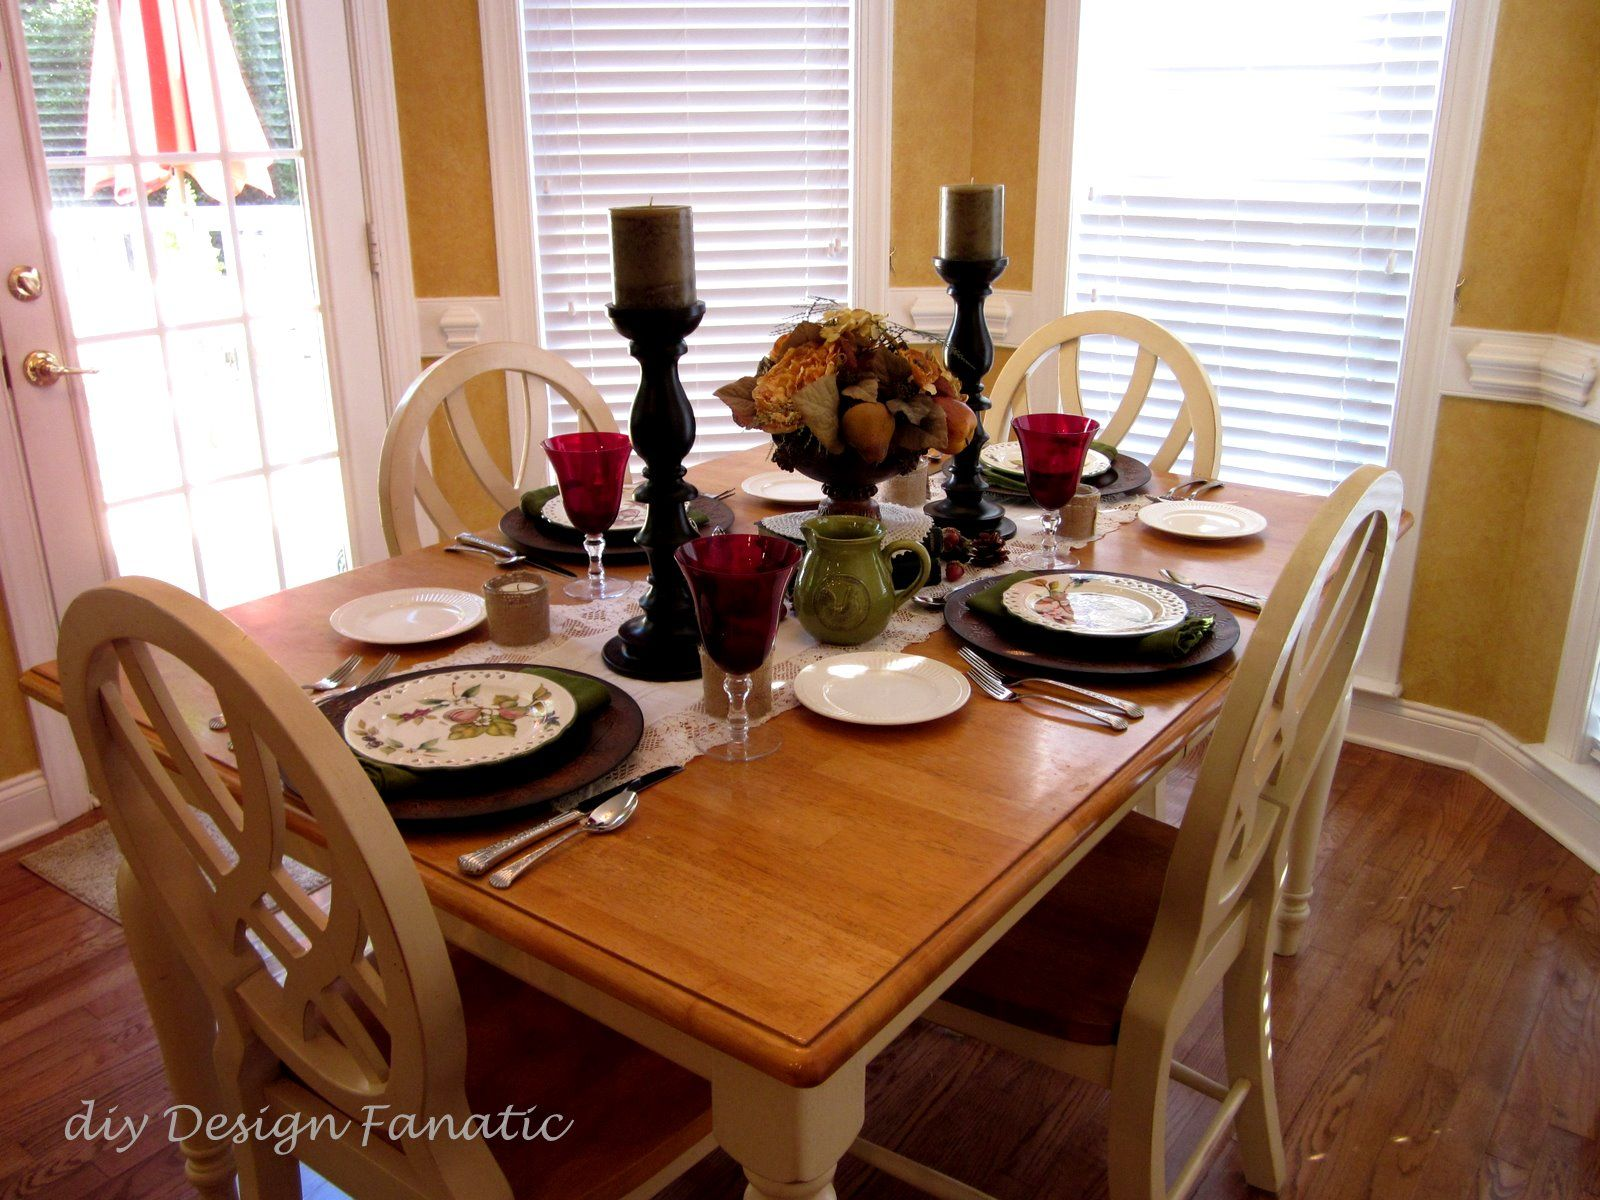 Room Tables For Special Occasions Image Of Table Decorating Ideas ...